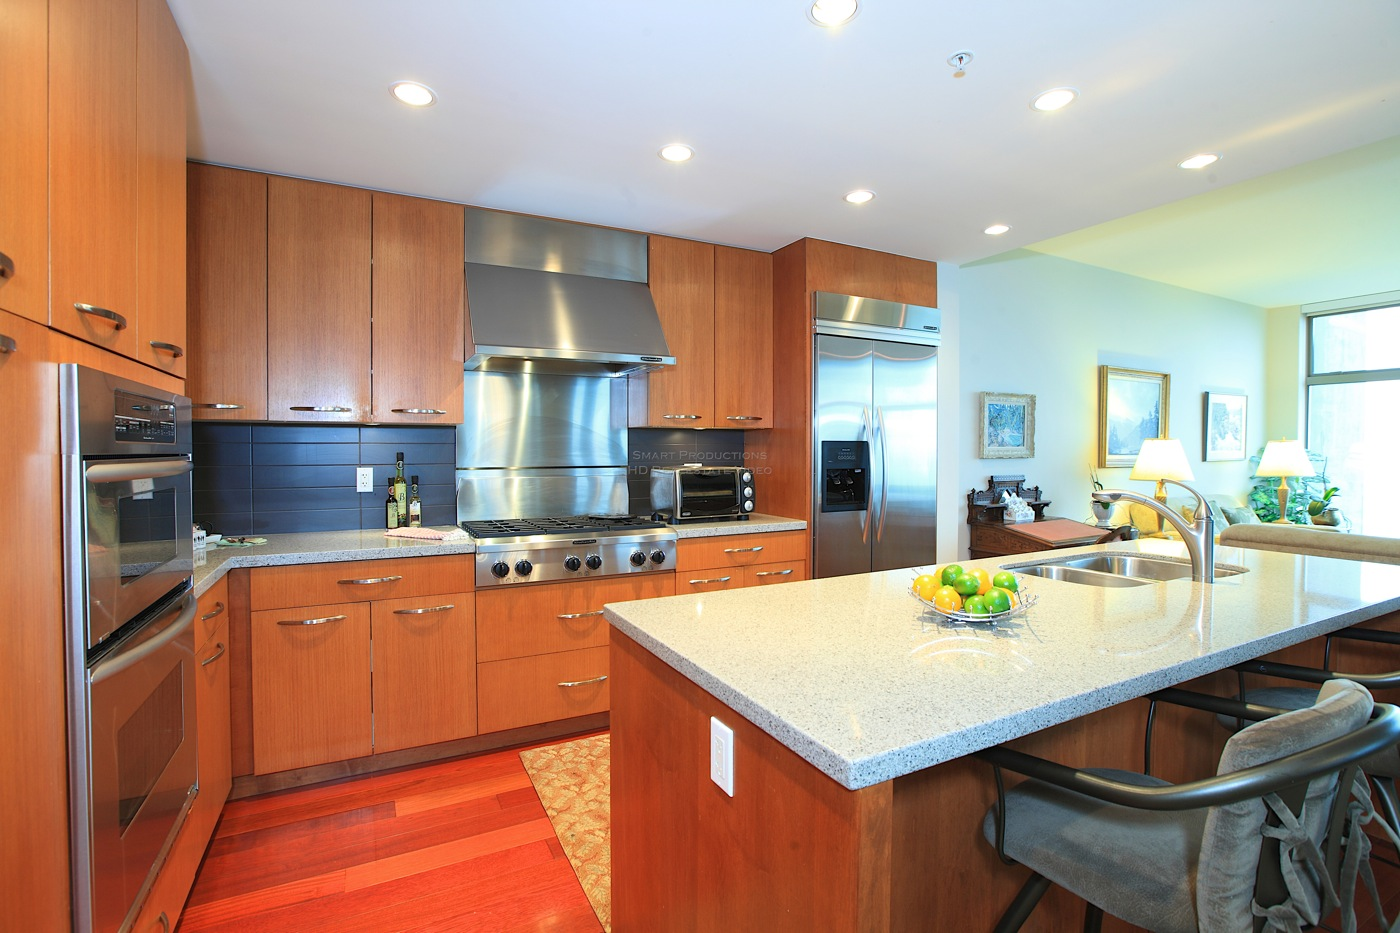 Listing Image of 1303 - 3335 Cypress Pl